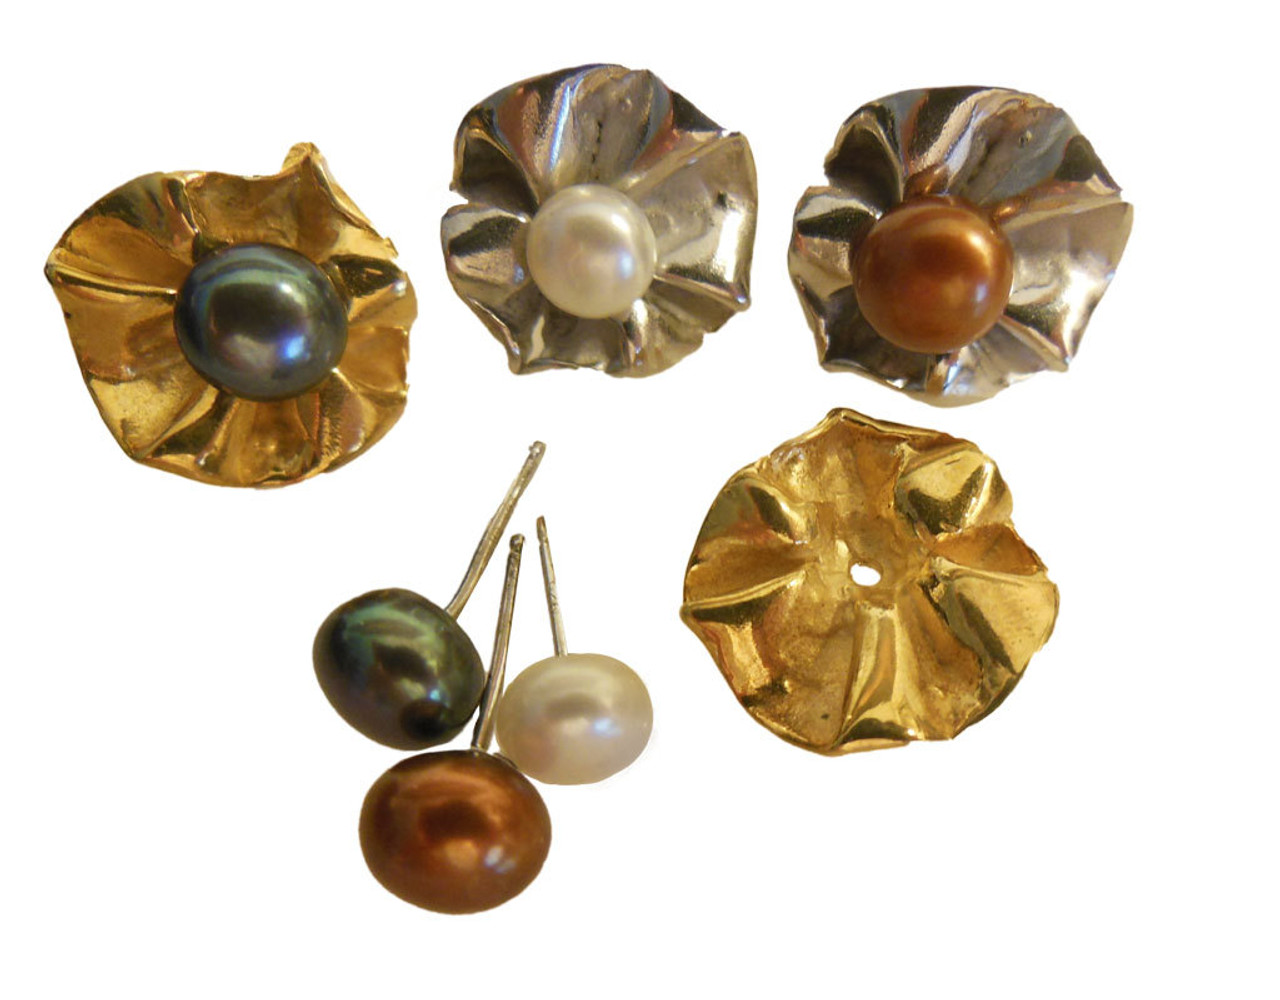 Ruffle Earring Jackets (2 sets) with 3 pearl stud earrings.   Silver and 18K gold plate.